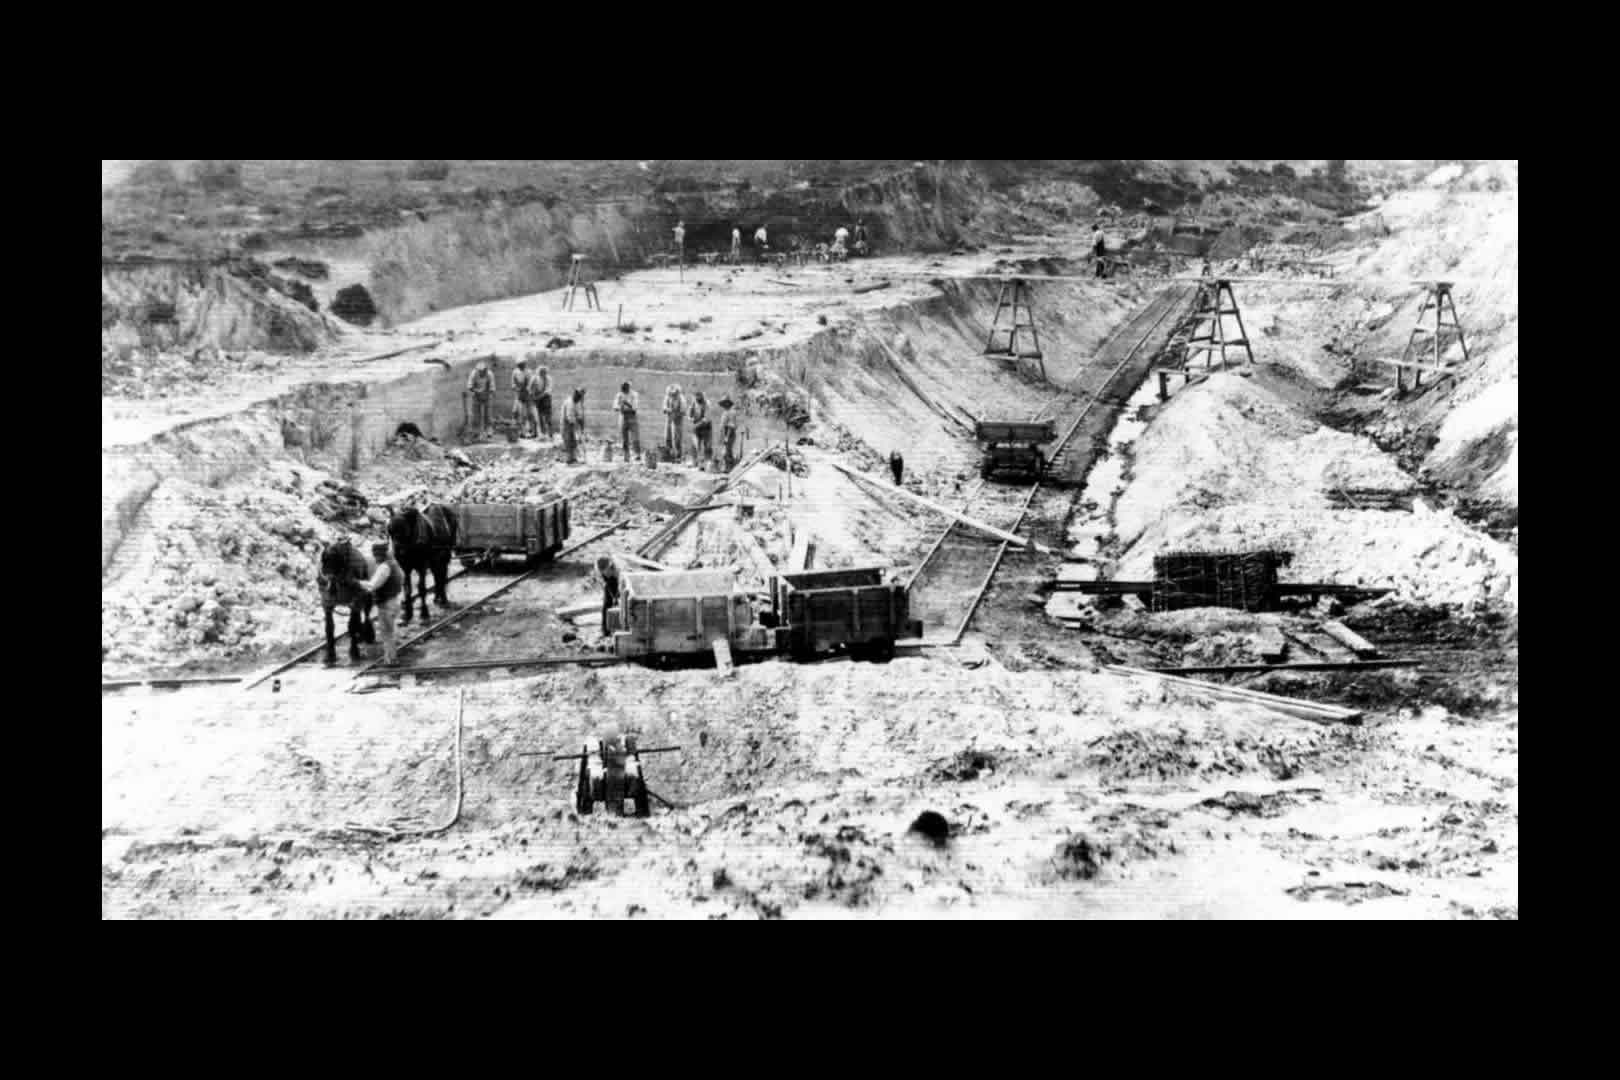 Norden open cast clay pit 1880s